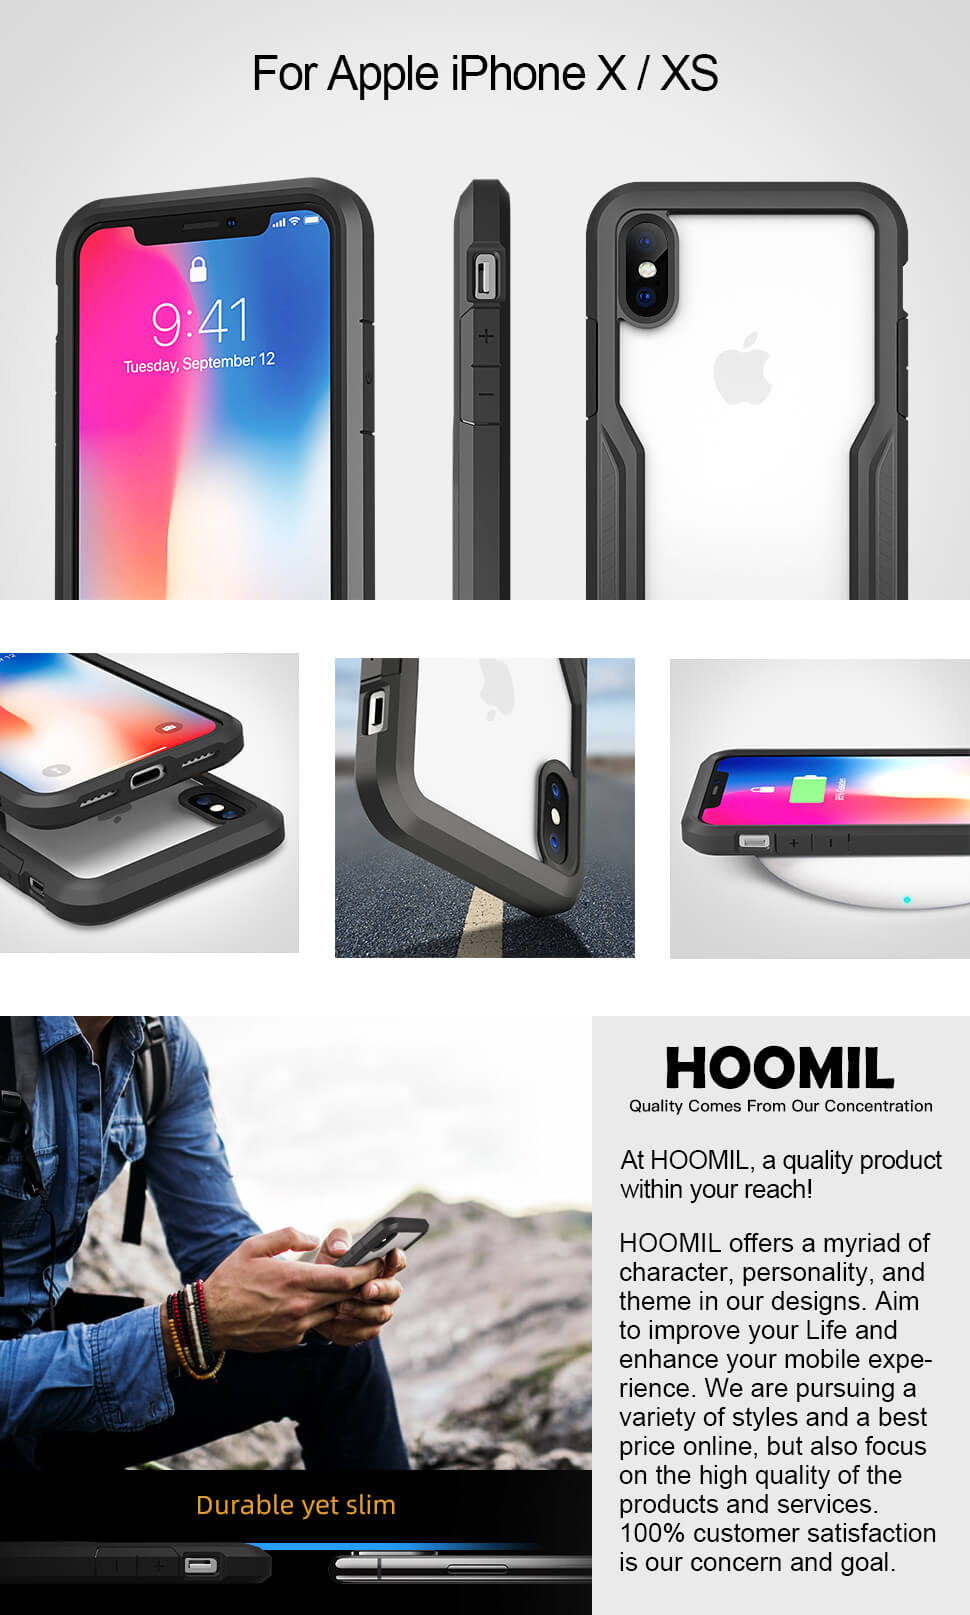 HOOMIL Compatible with iPhone X Case, iPhone XS Case, Shock Absorption Phone Cover for Apple iPhone X/XS Smartphone (5.8 inches) - Semi Transparent